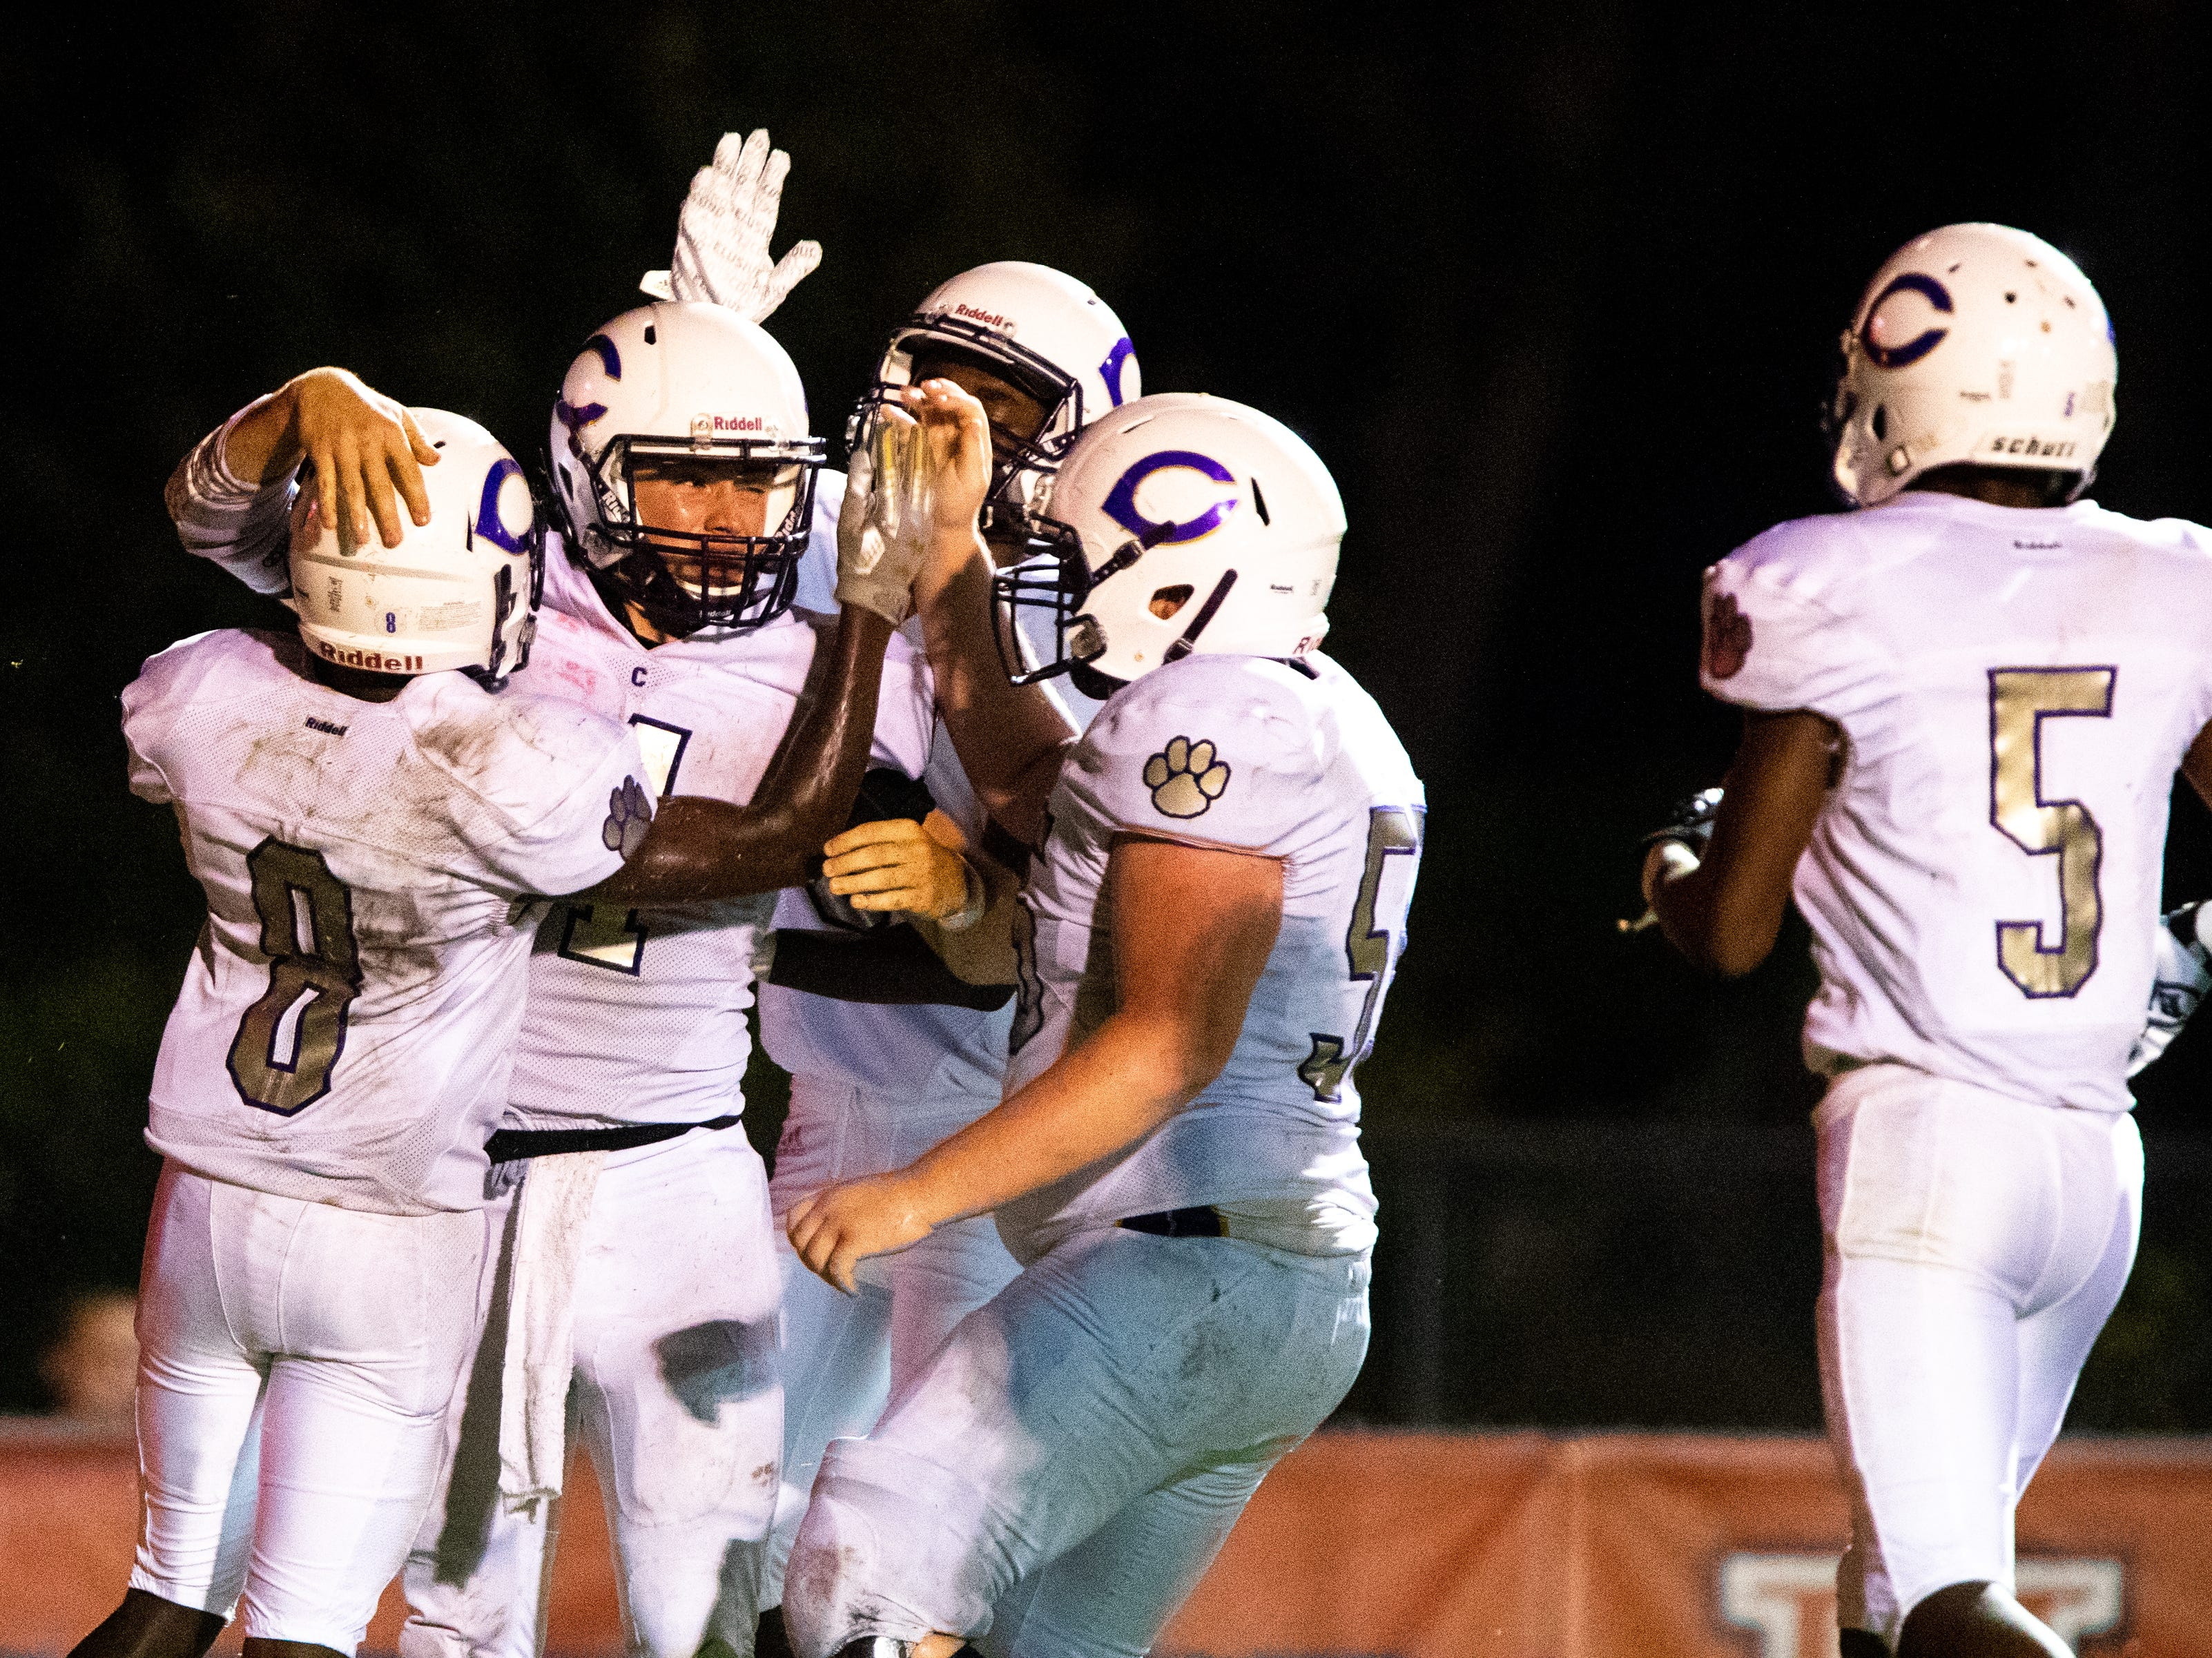 Ford Cooper (4) of Clarksville High is celebrated after his touchdown during the second half at Henry County Friday, Sept. 14, 2018, in Paris, Tenn.